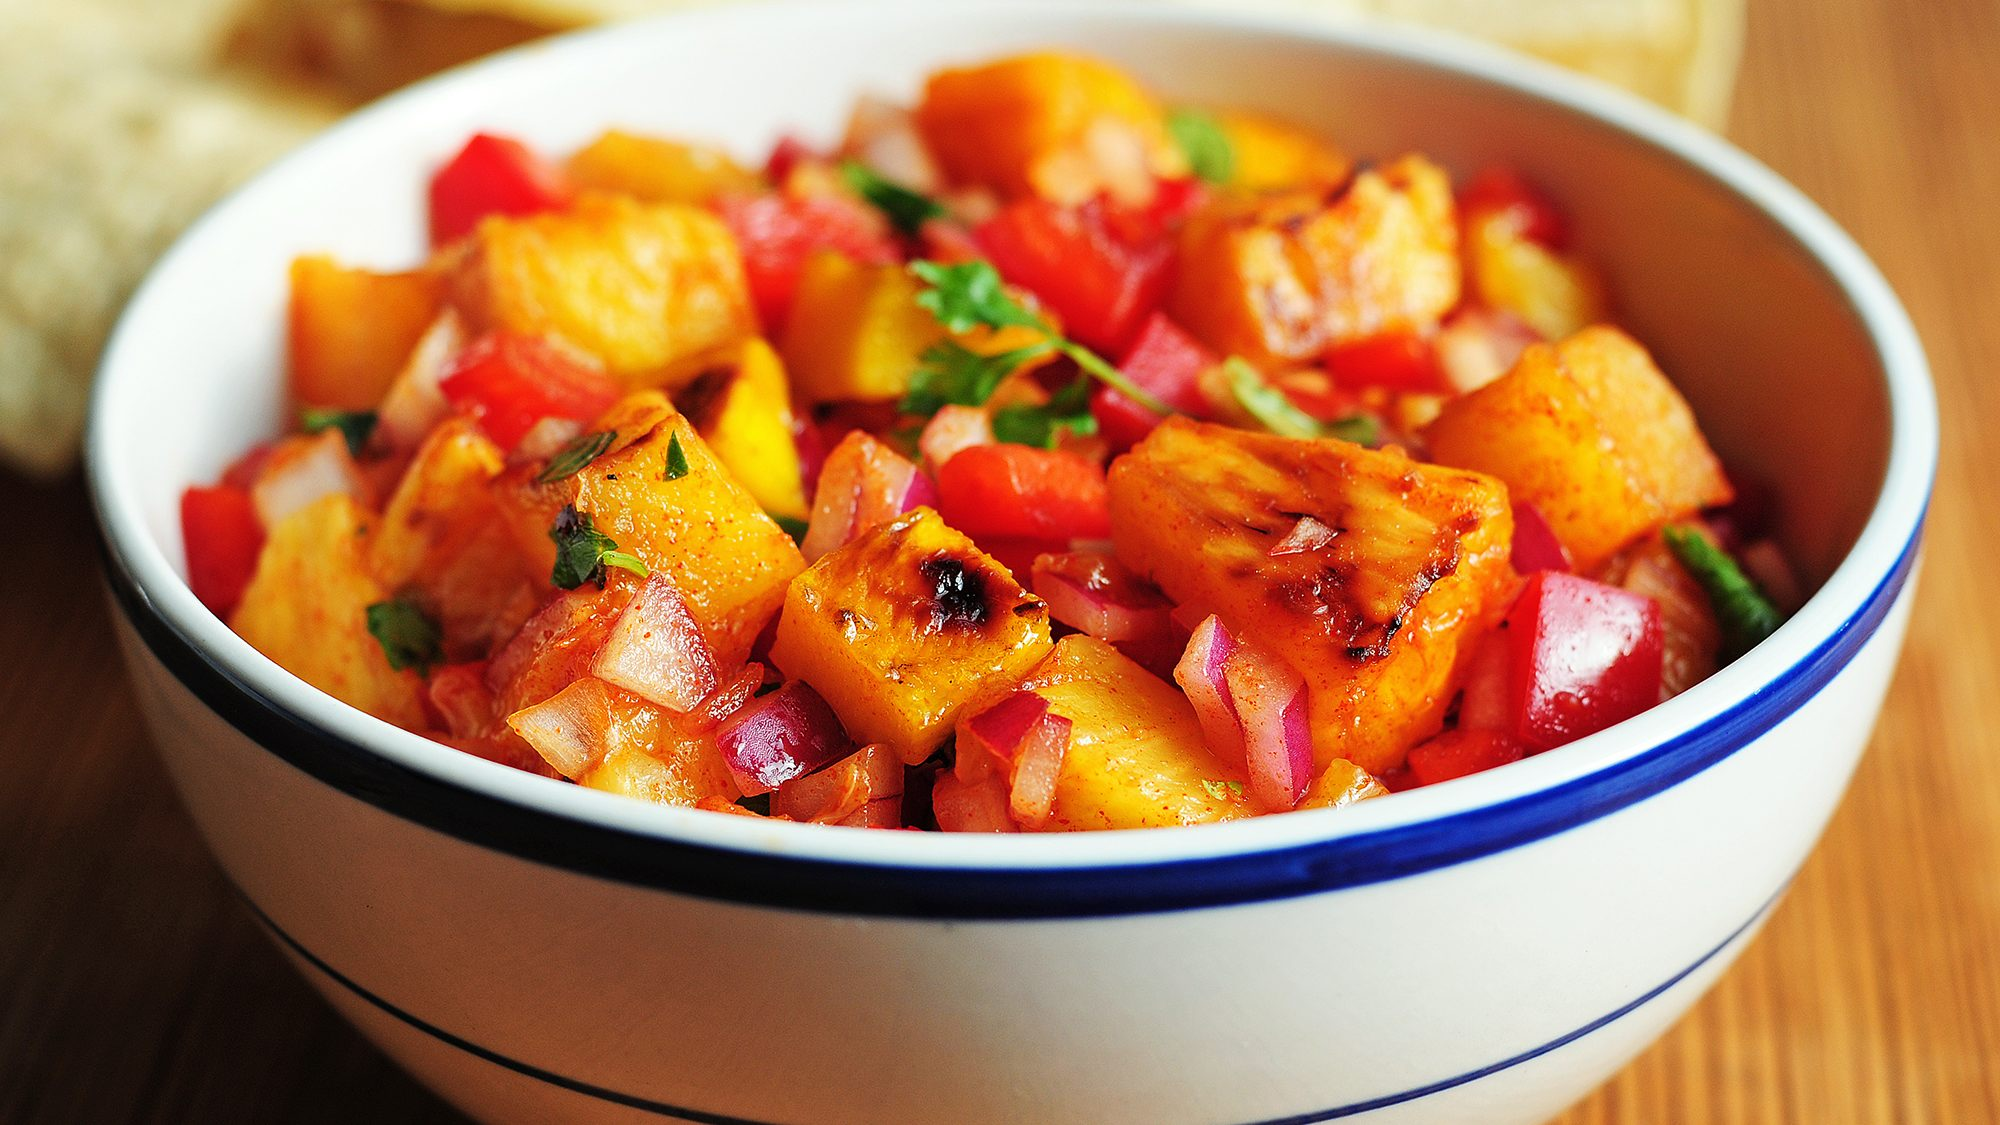 McCormick Gourmet Grilled Fruit Salsa with Lime Tequila and Smoked Paprika